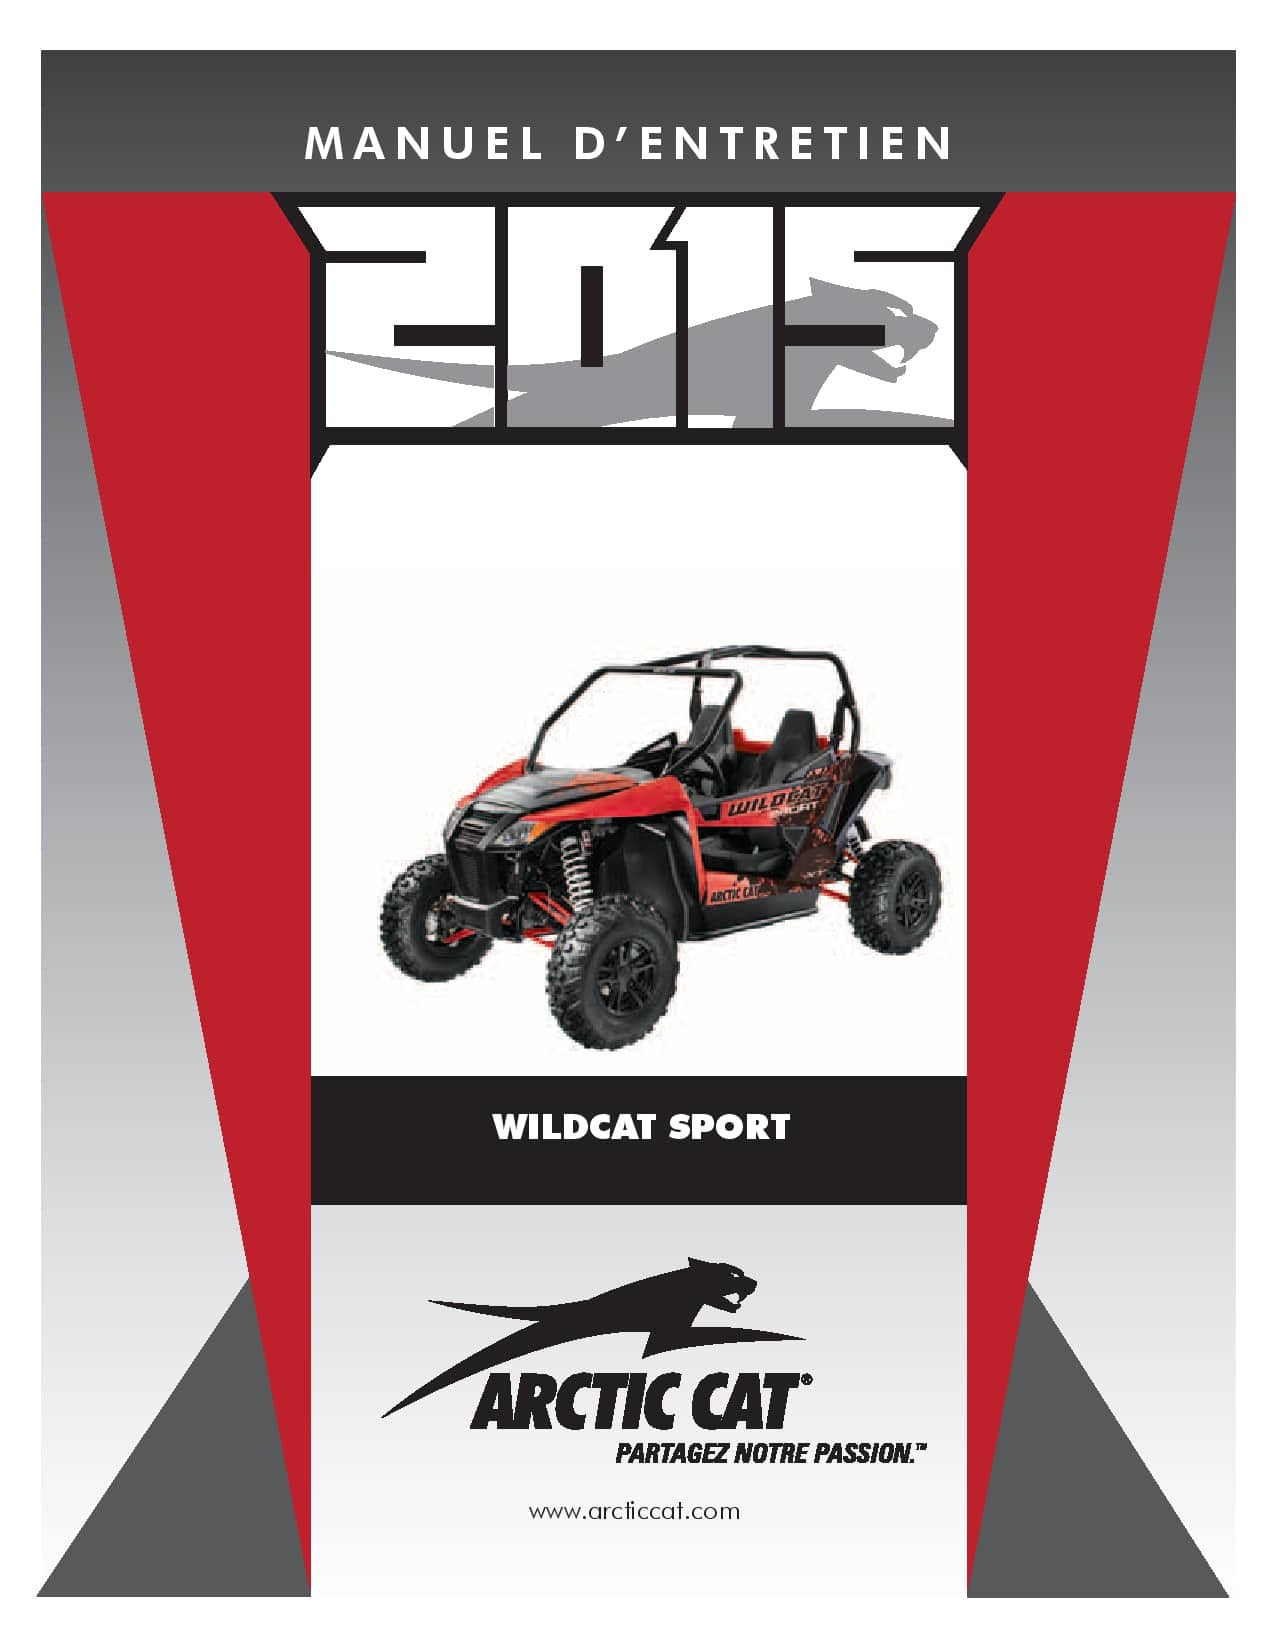 Arctic cat download service repair workshop manual oukasfo tagsarctic cat 2x4300 2001 workshop service repair manual2000 arctic cat atv 250 300 400 500 repair service shop2001 arctic cat 4x4 500 workshop service fandeluxe